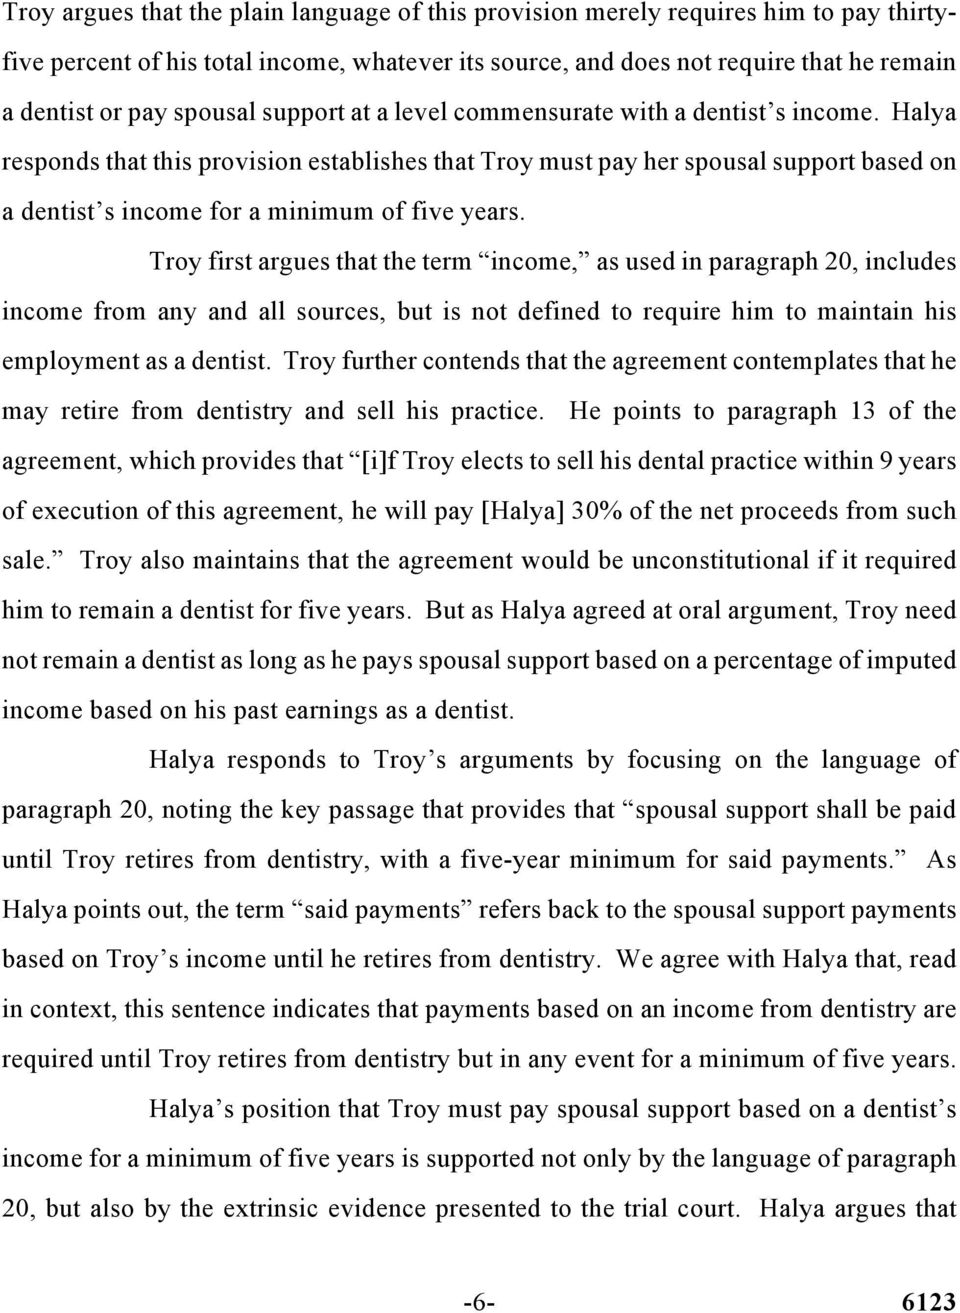 Halya responds that this provision establishes that Troy must pay her spousal support based on a dentist s income for a minimum of five years.